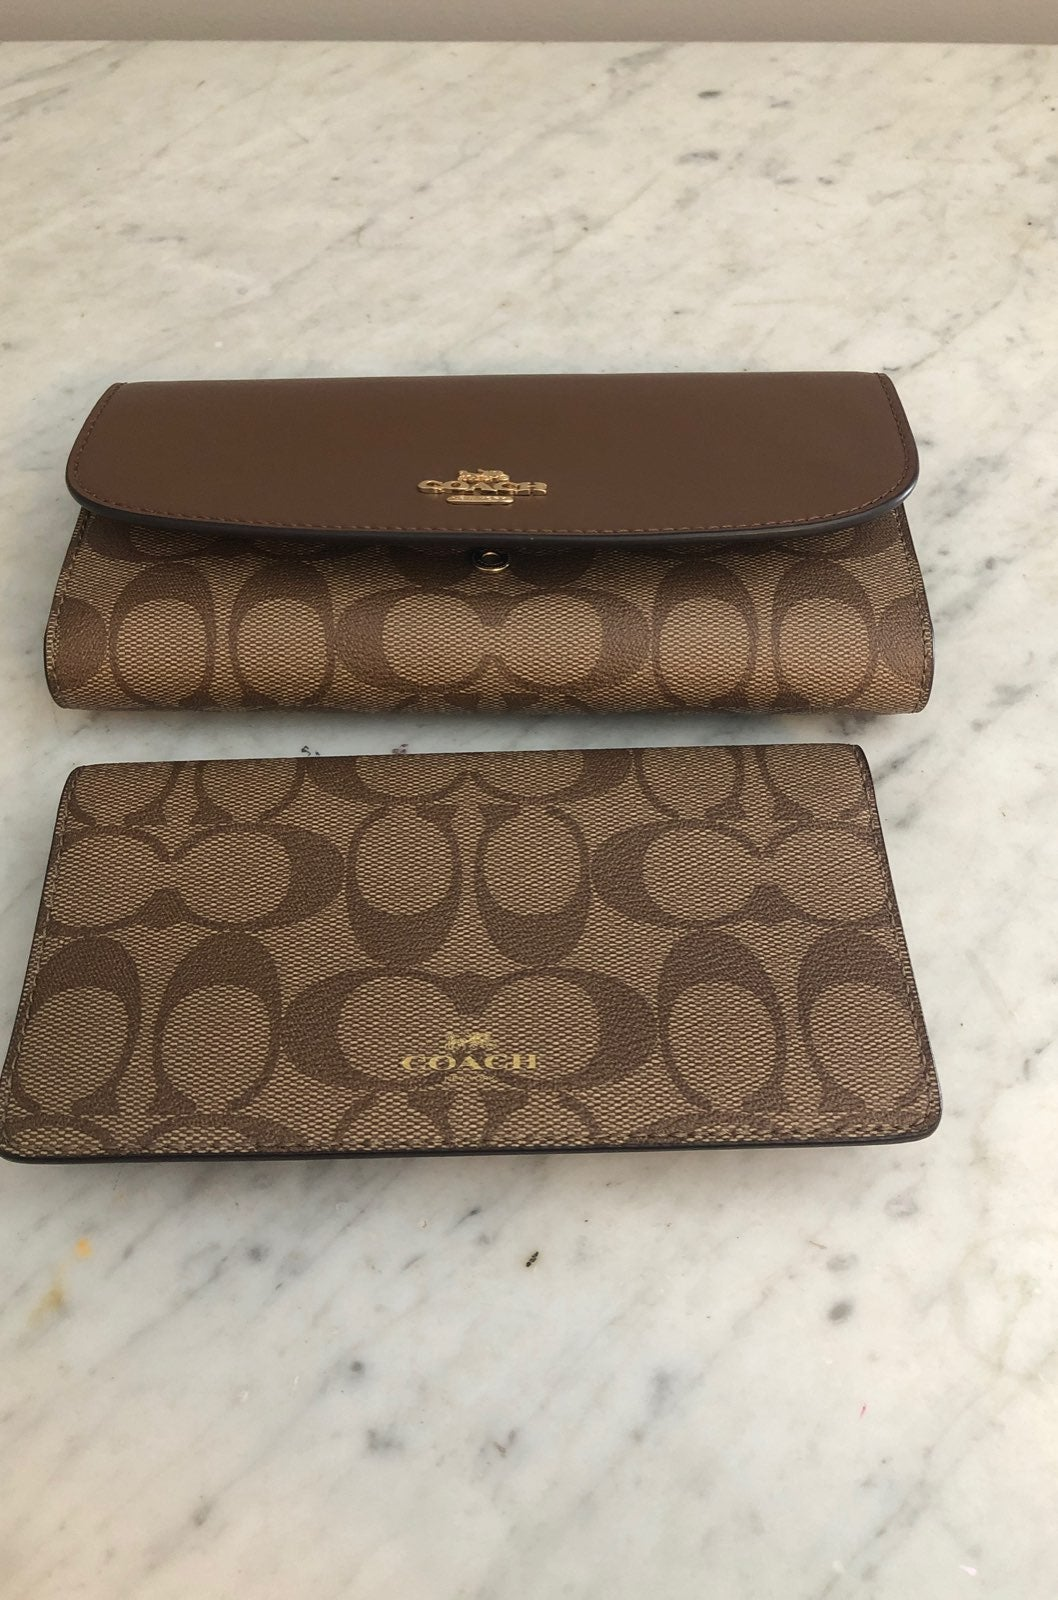 Coach trifold wallet & checkbook holder